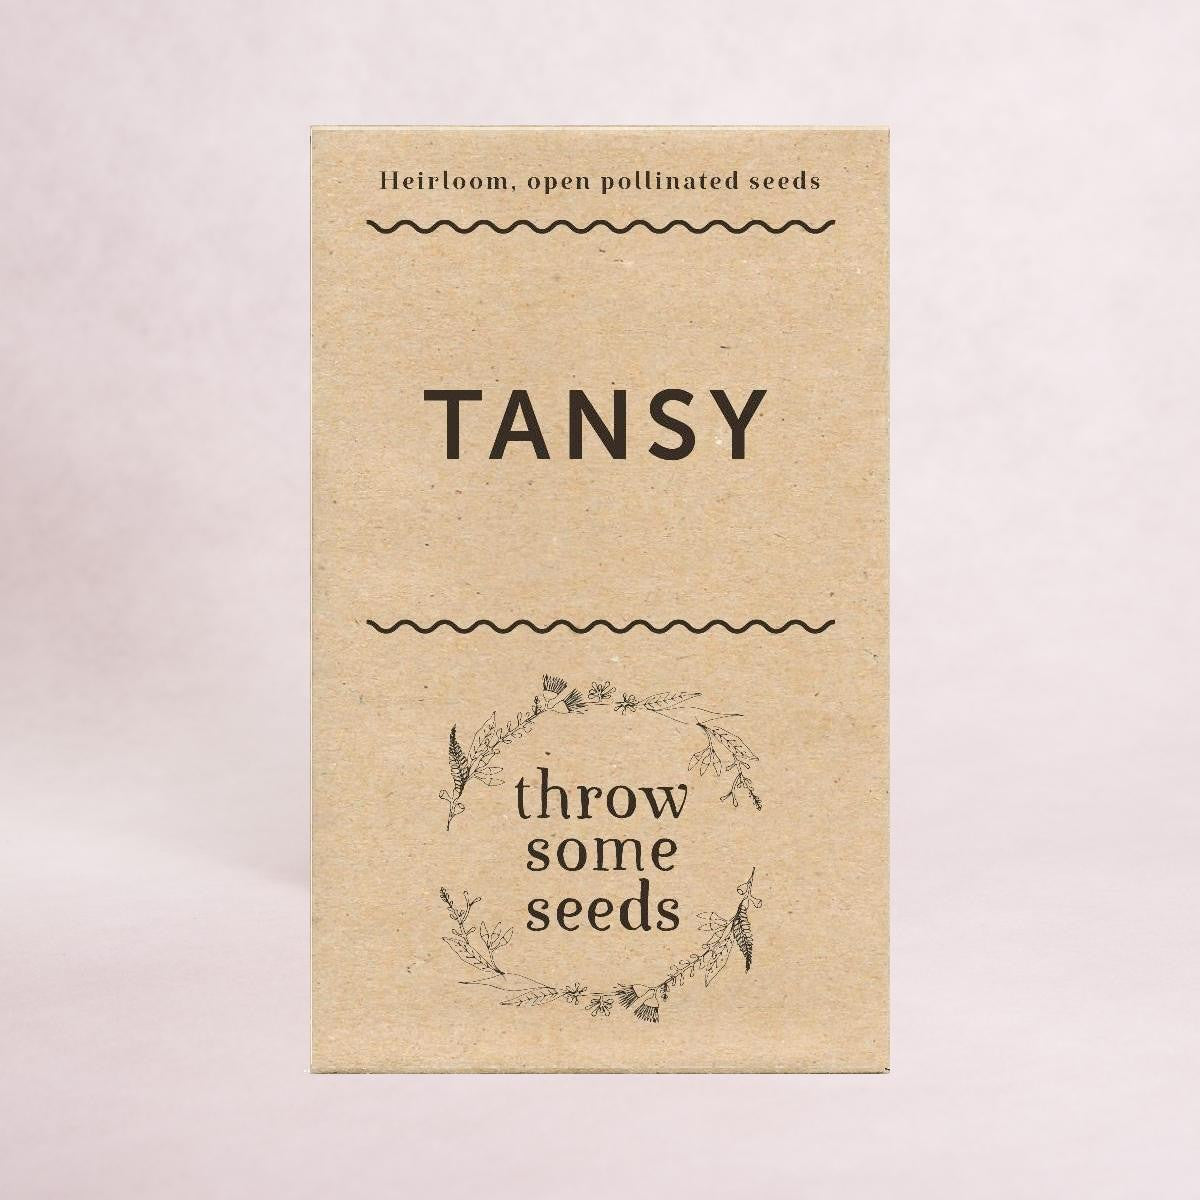 Tansy Seeds - Seeds - Throw Some Seeds - Australian gardening gifts and eco products online!